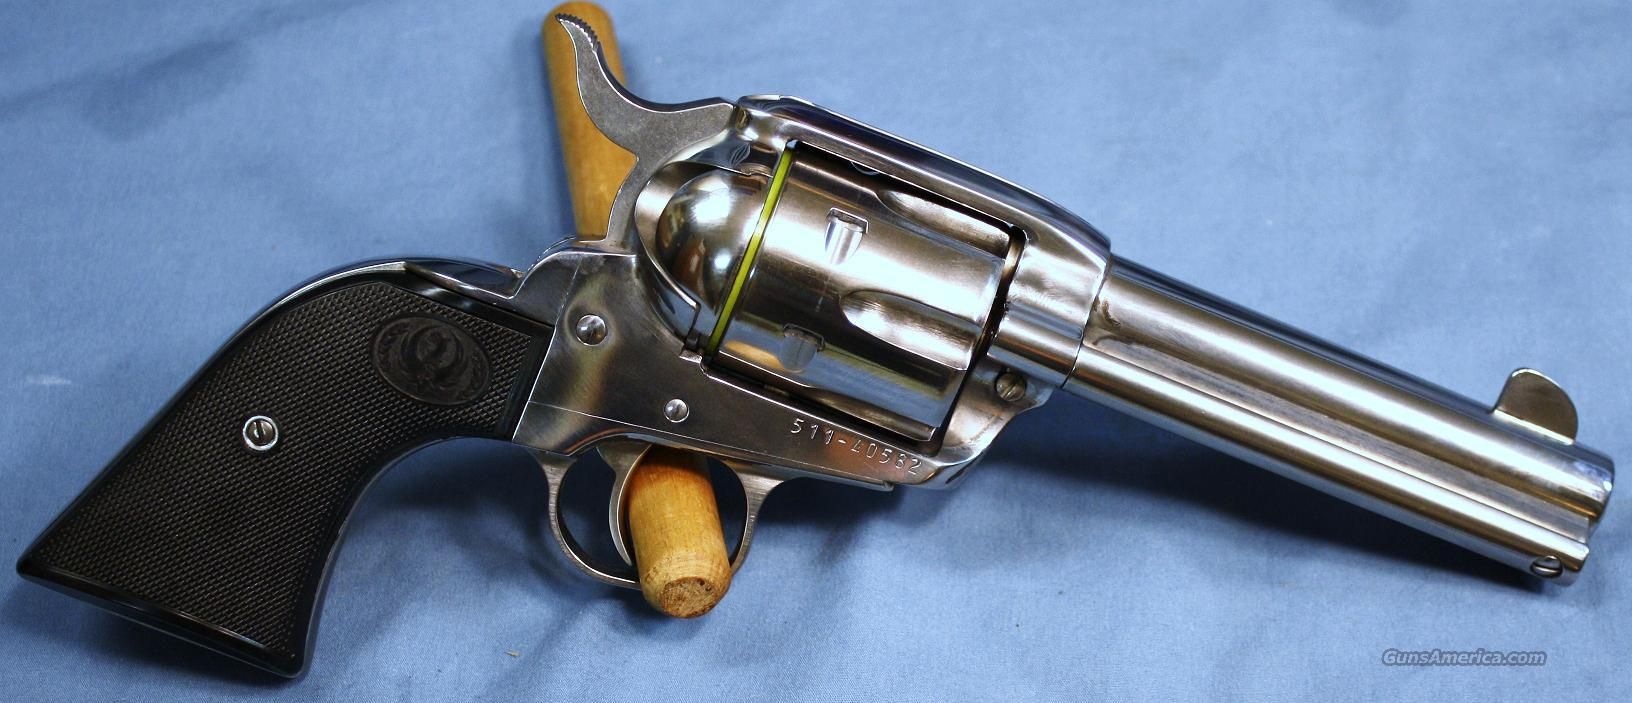 Ruger New Vaquero Stainless Single Action Revolver .45 Colt  Guns > Pistols > Ruger Single Action Revolvers > Cowboy Action